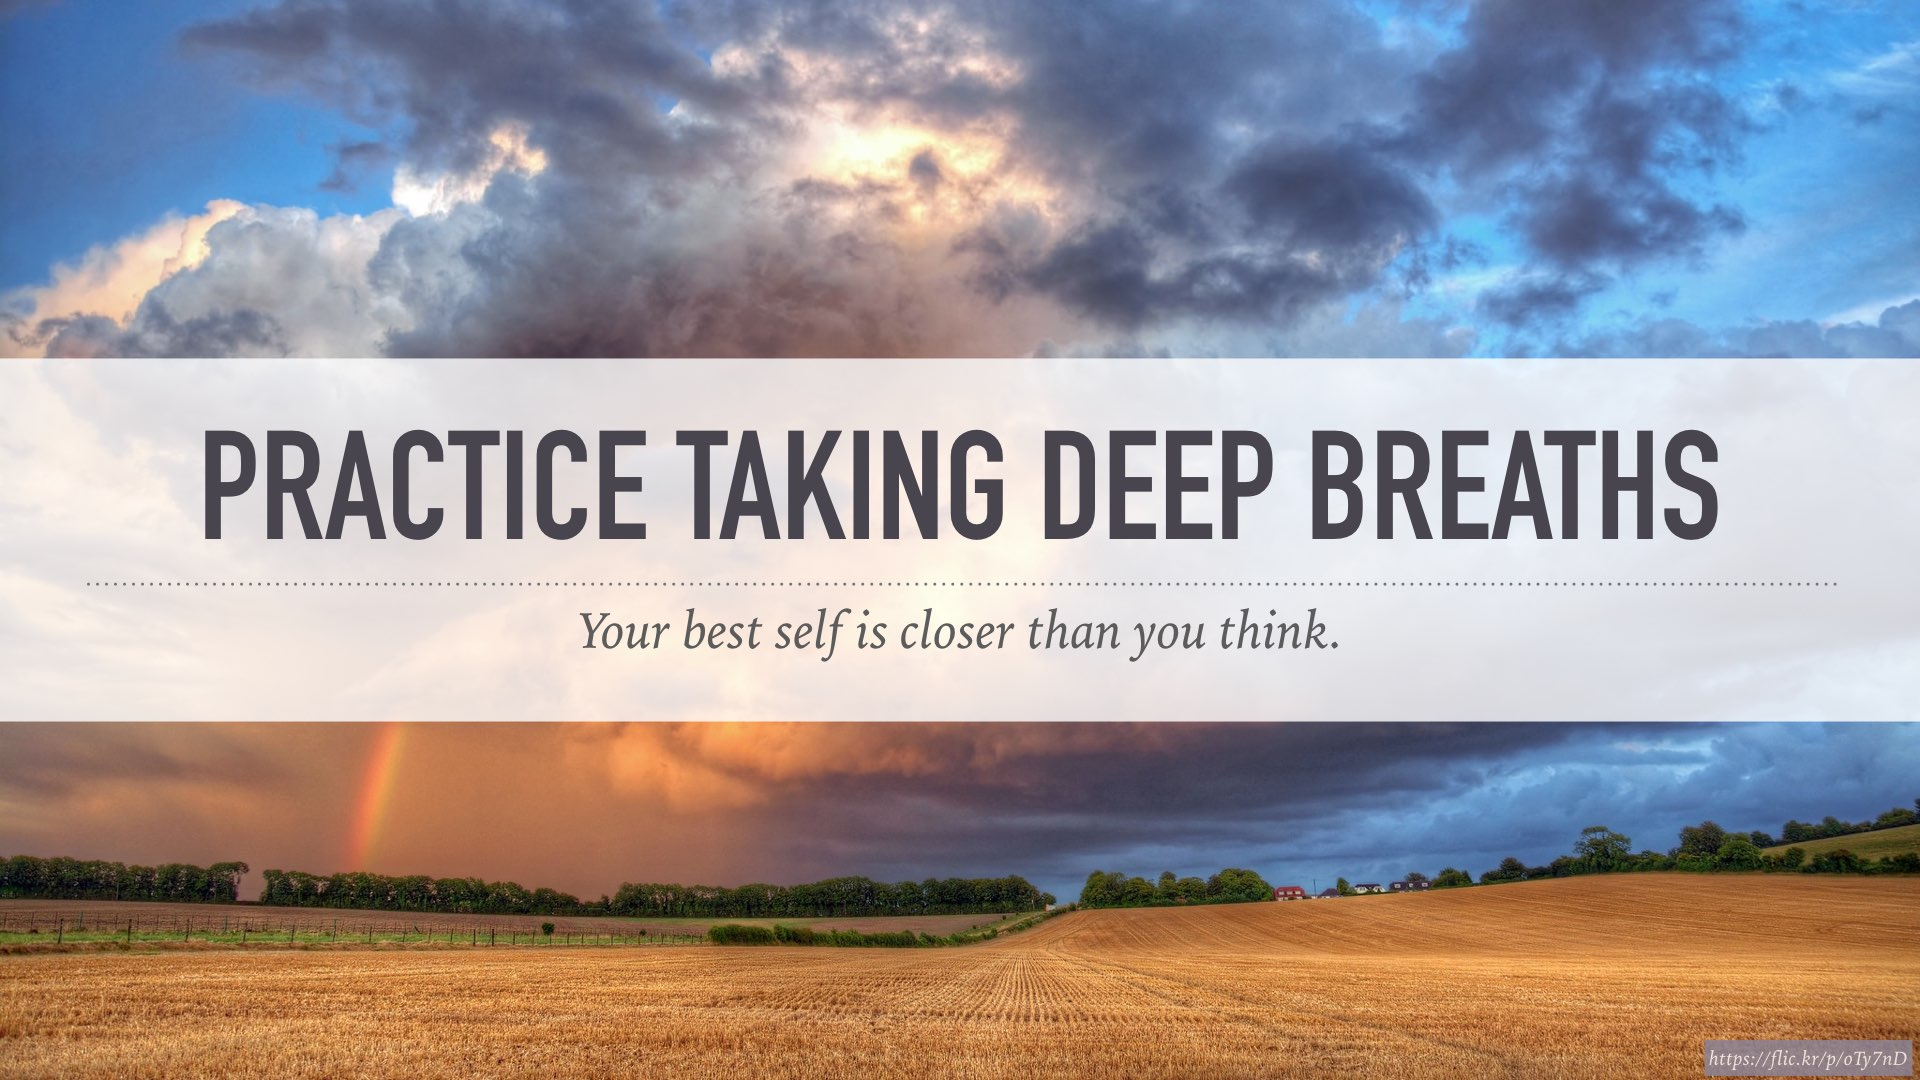 Practice taking deep breaths. Your best self is closer than you think.